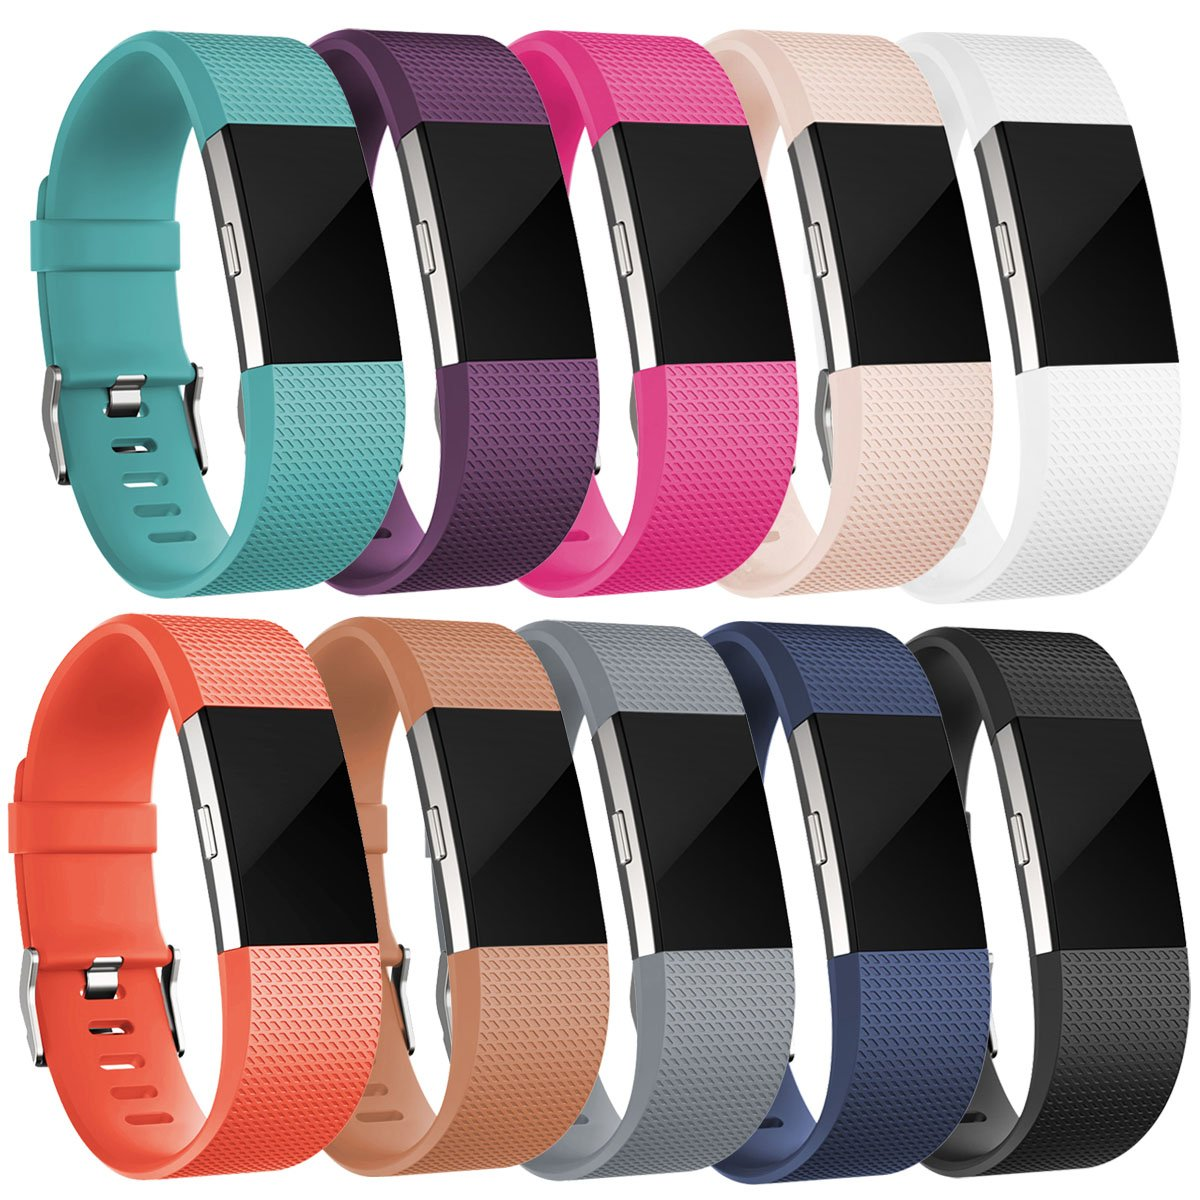 Bands for Fitbit Charge 2 HR, 10-Pack, Replacement Classic Fitness Accessory Band for Fitbit Charge 2